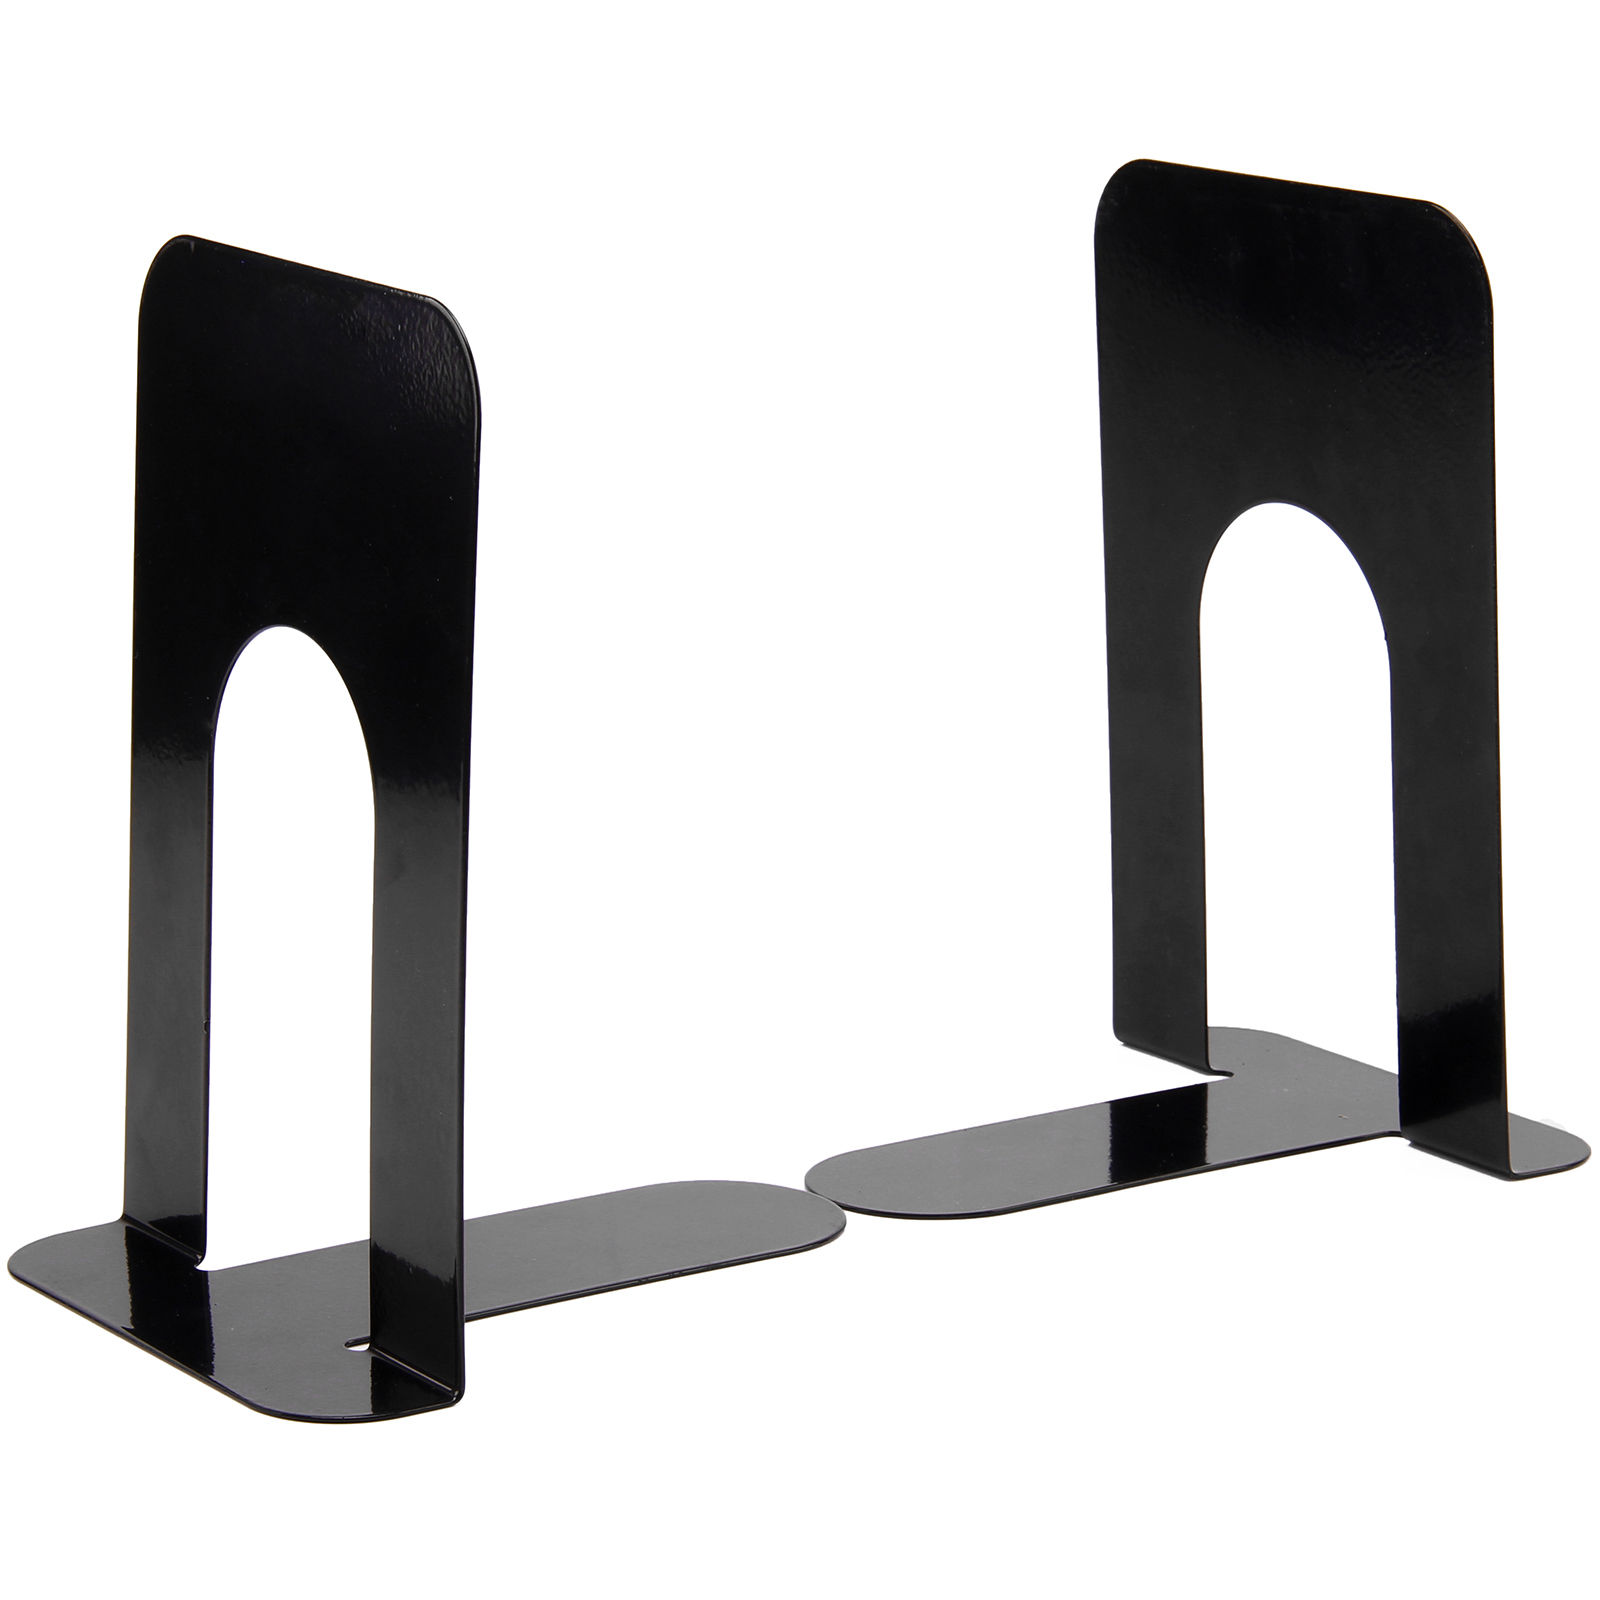 Heavy Duty Metal Bookends Book Ends Home & School Office Stationery - 4 Pairs 8 беспроводной маршрутизатор tp link tl r470t